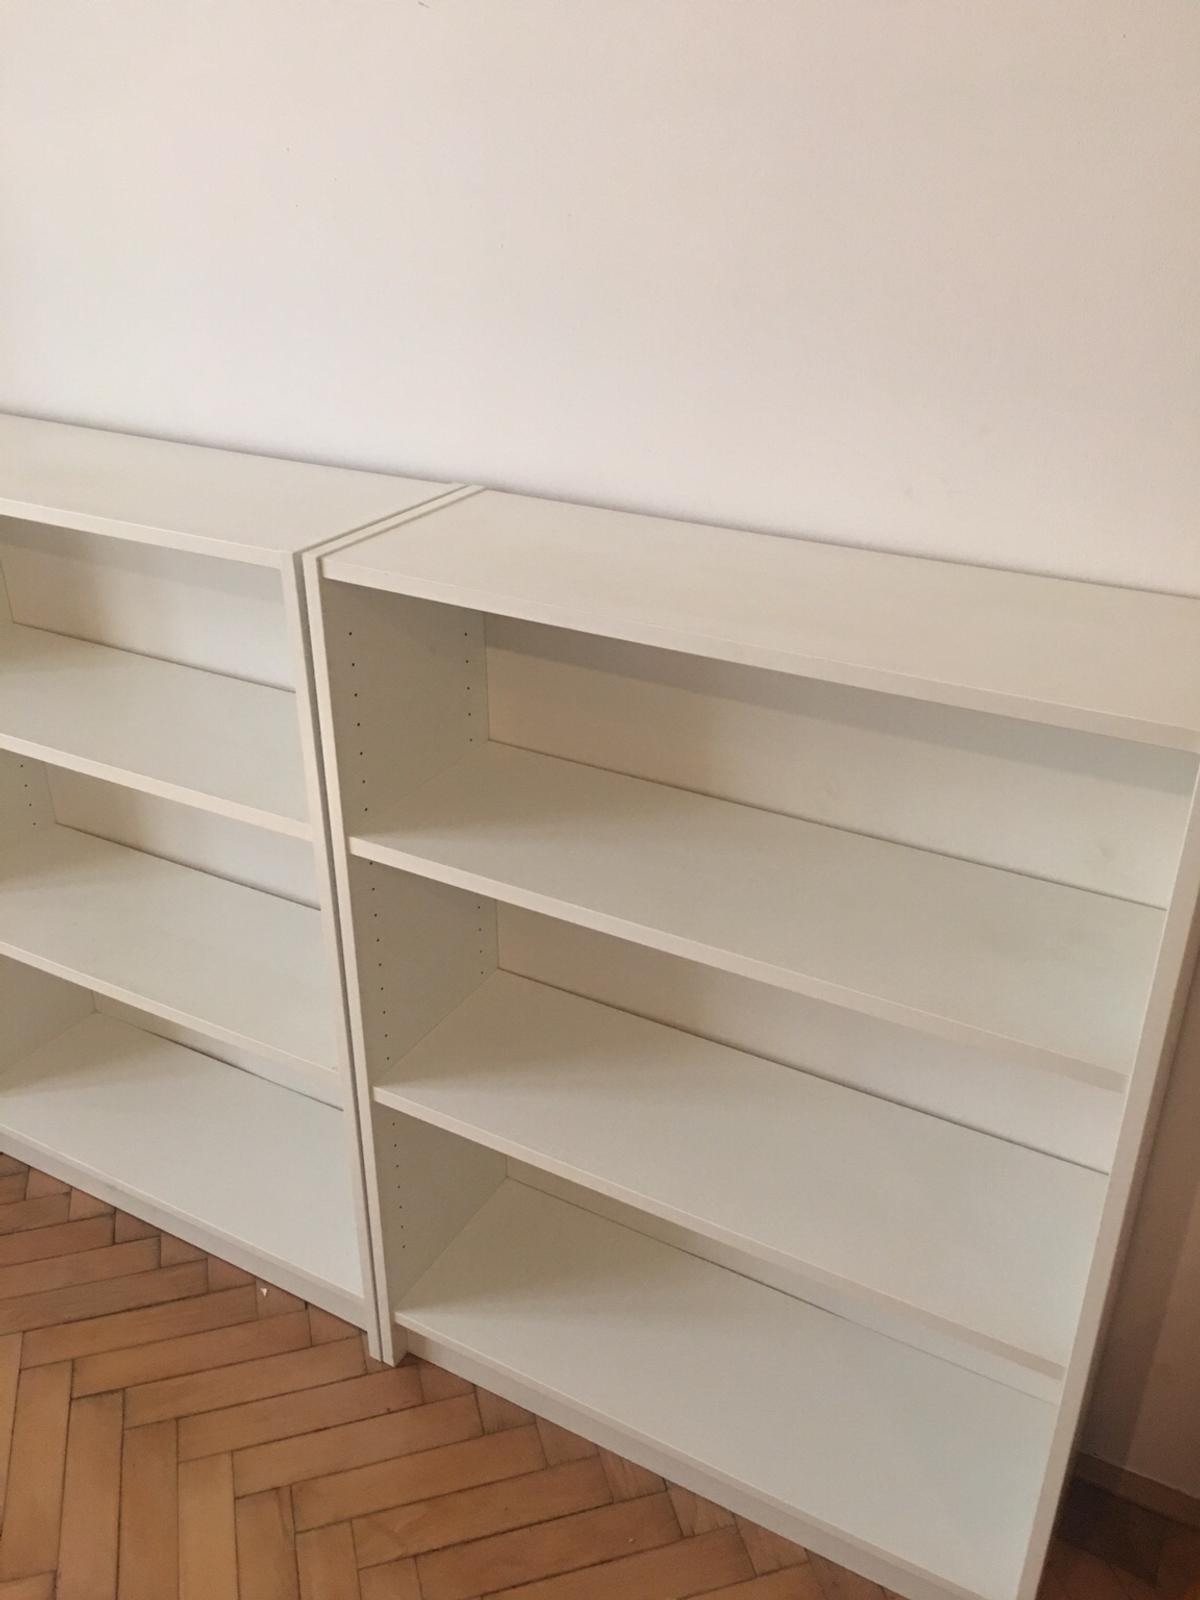 Ikea Billy Regal und 3 Billy Regalböden, € 20, (1070 Wien